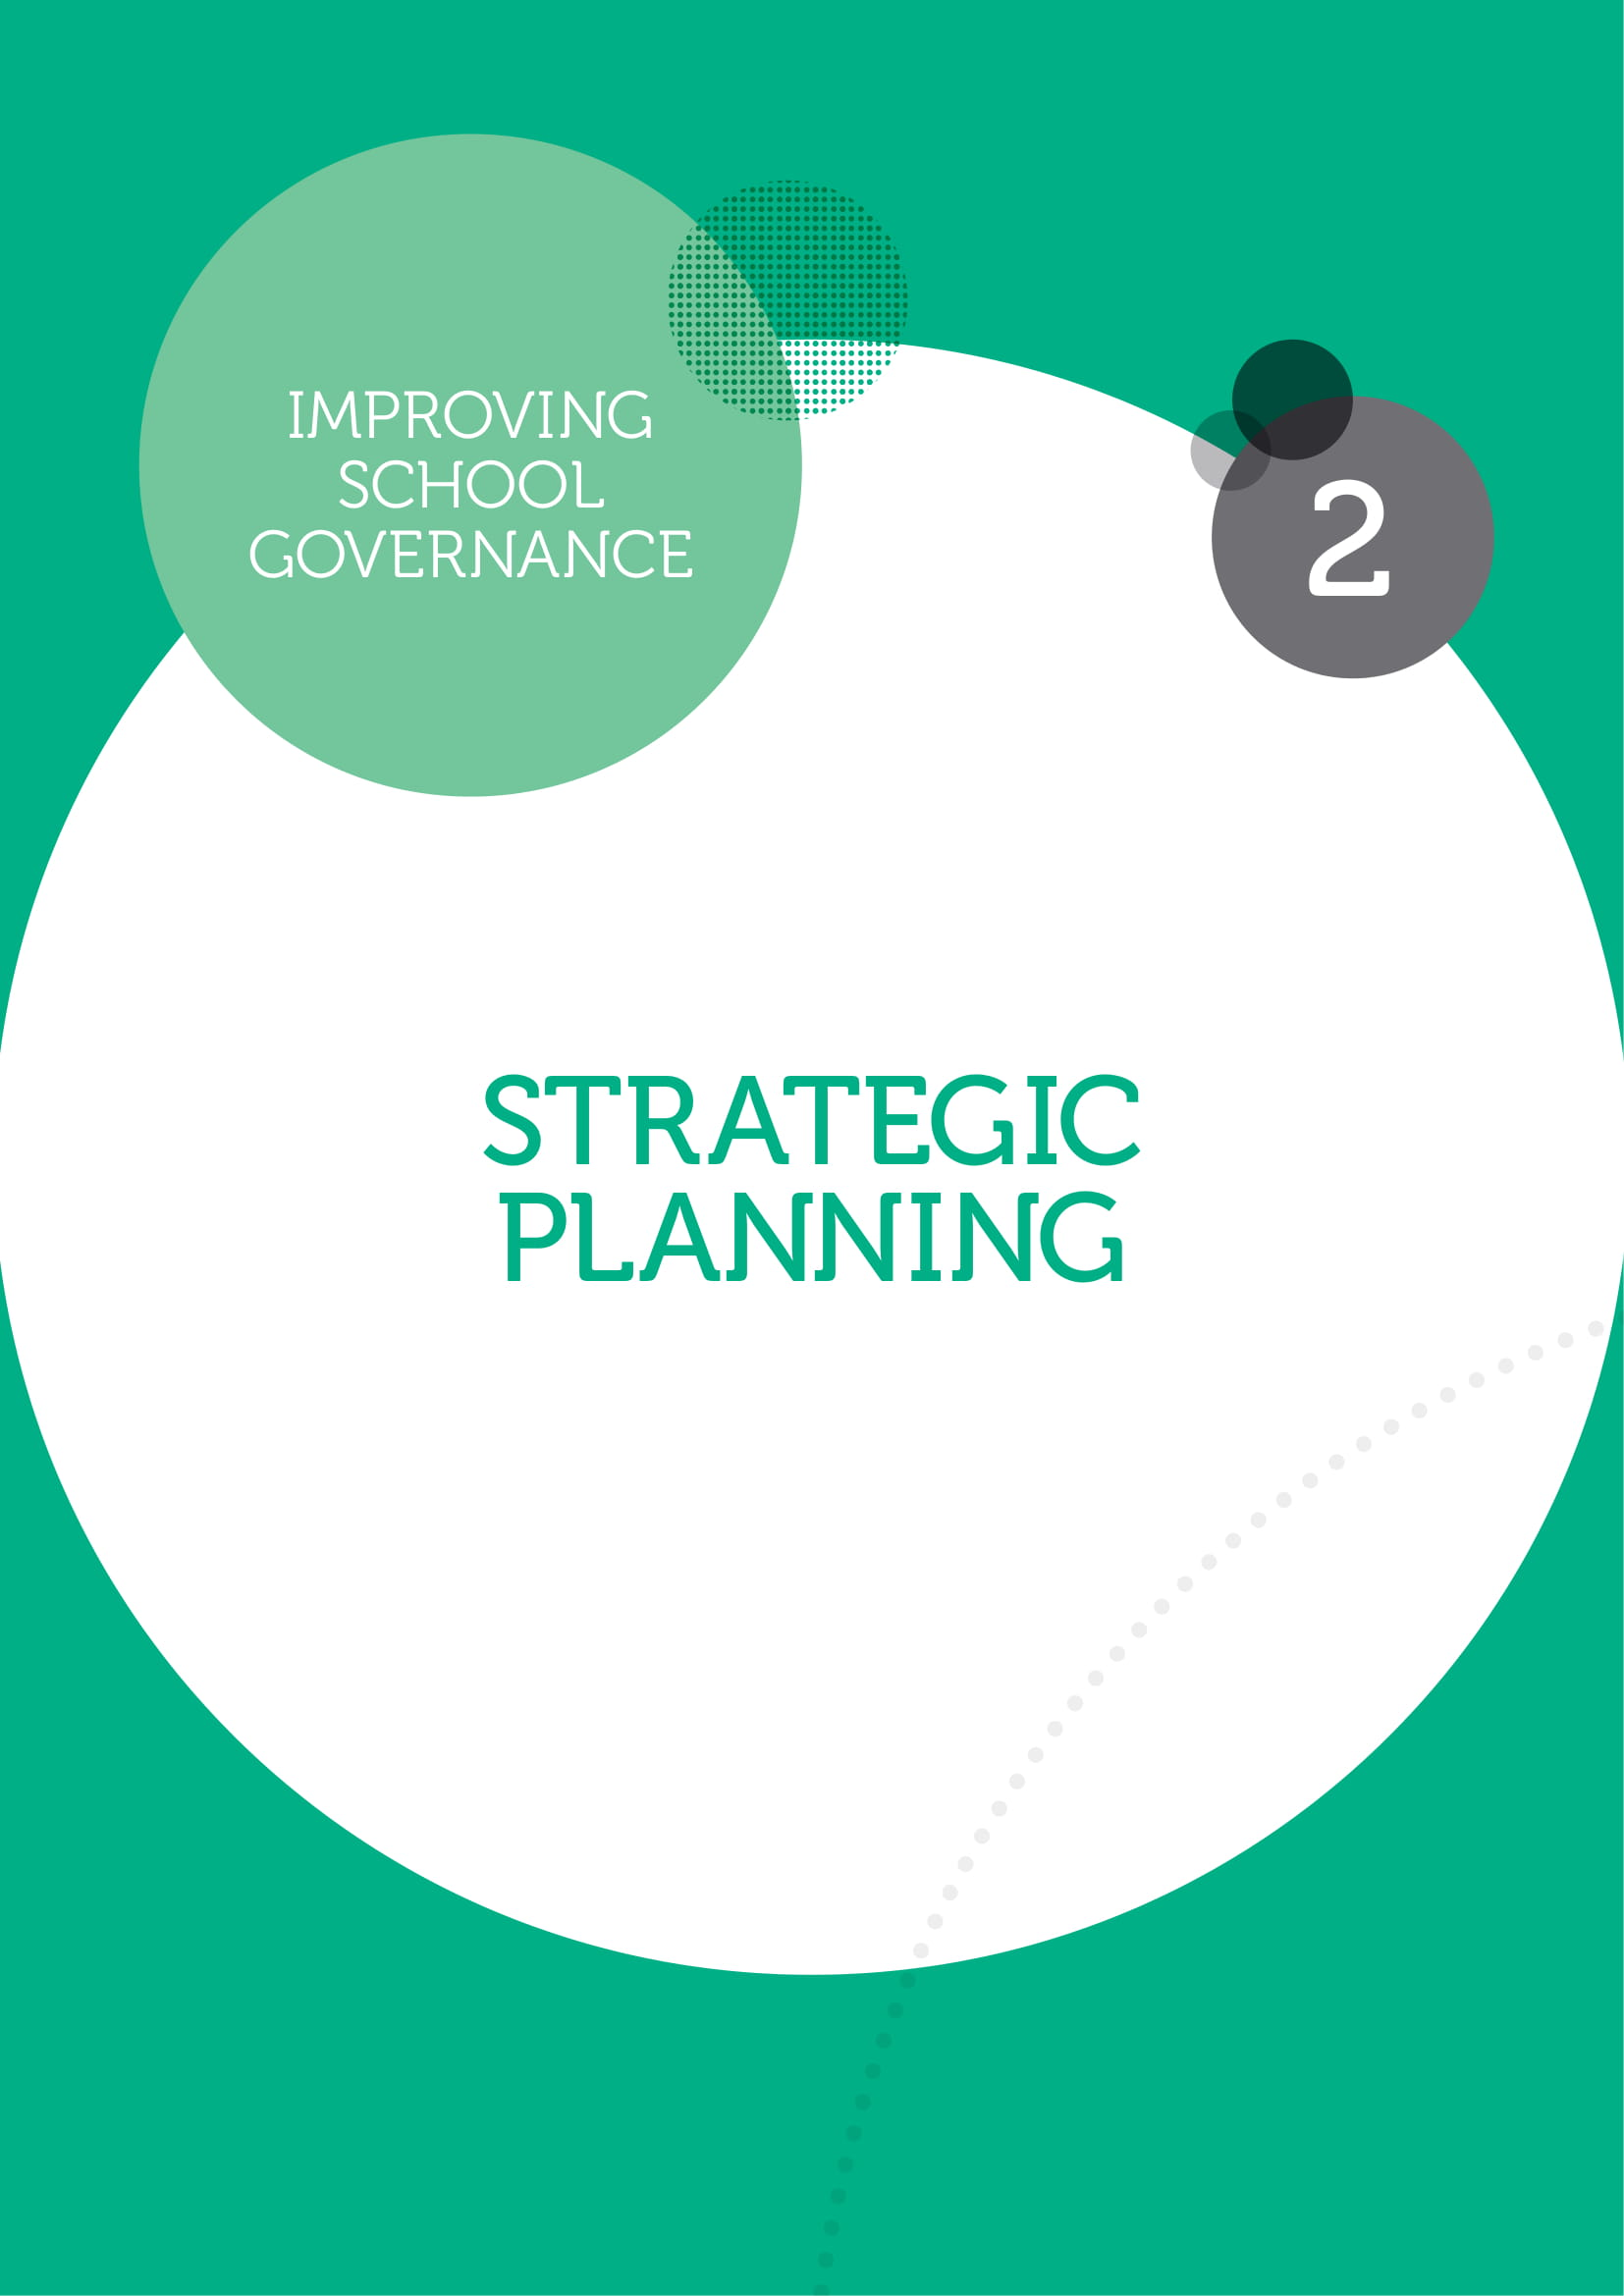 strategic planning for improving school governance example 01